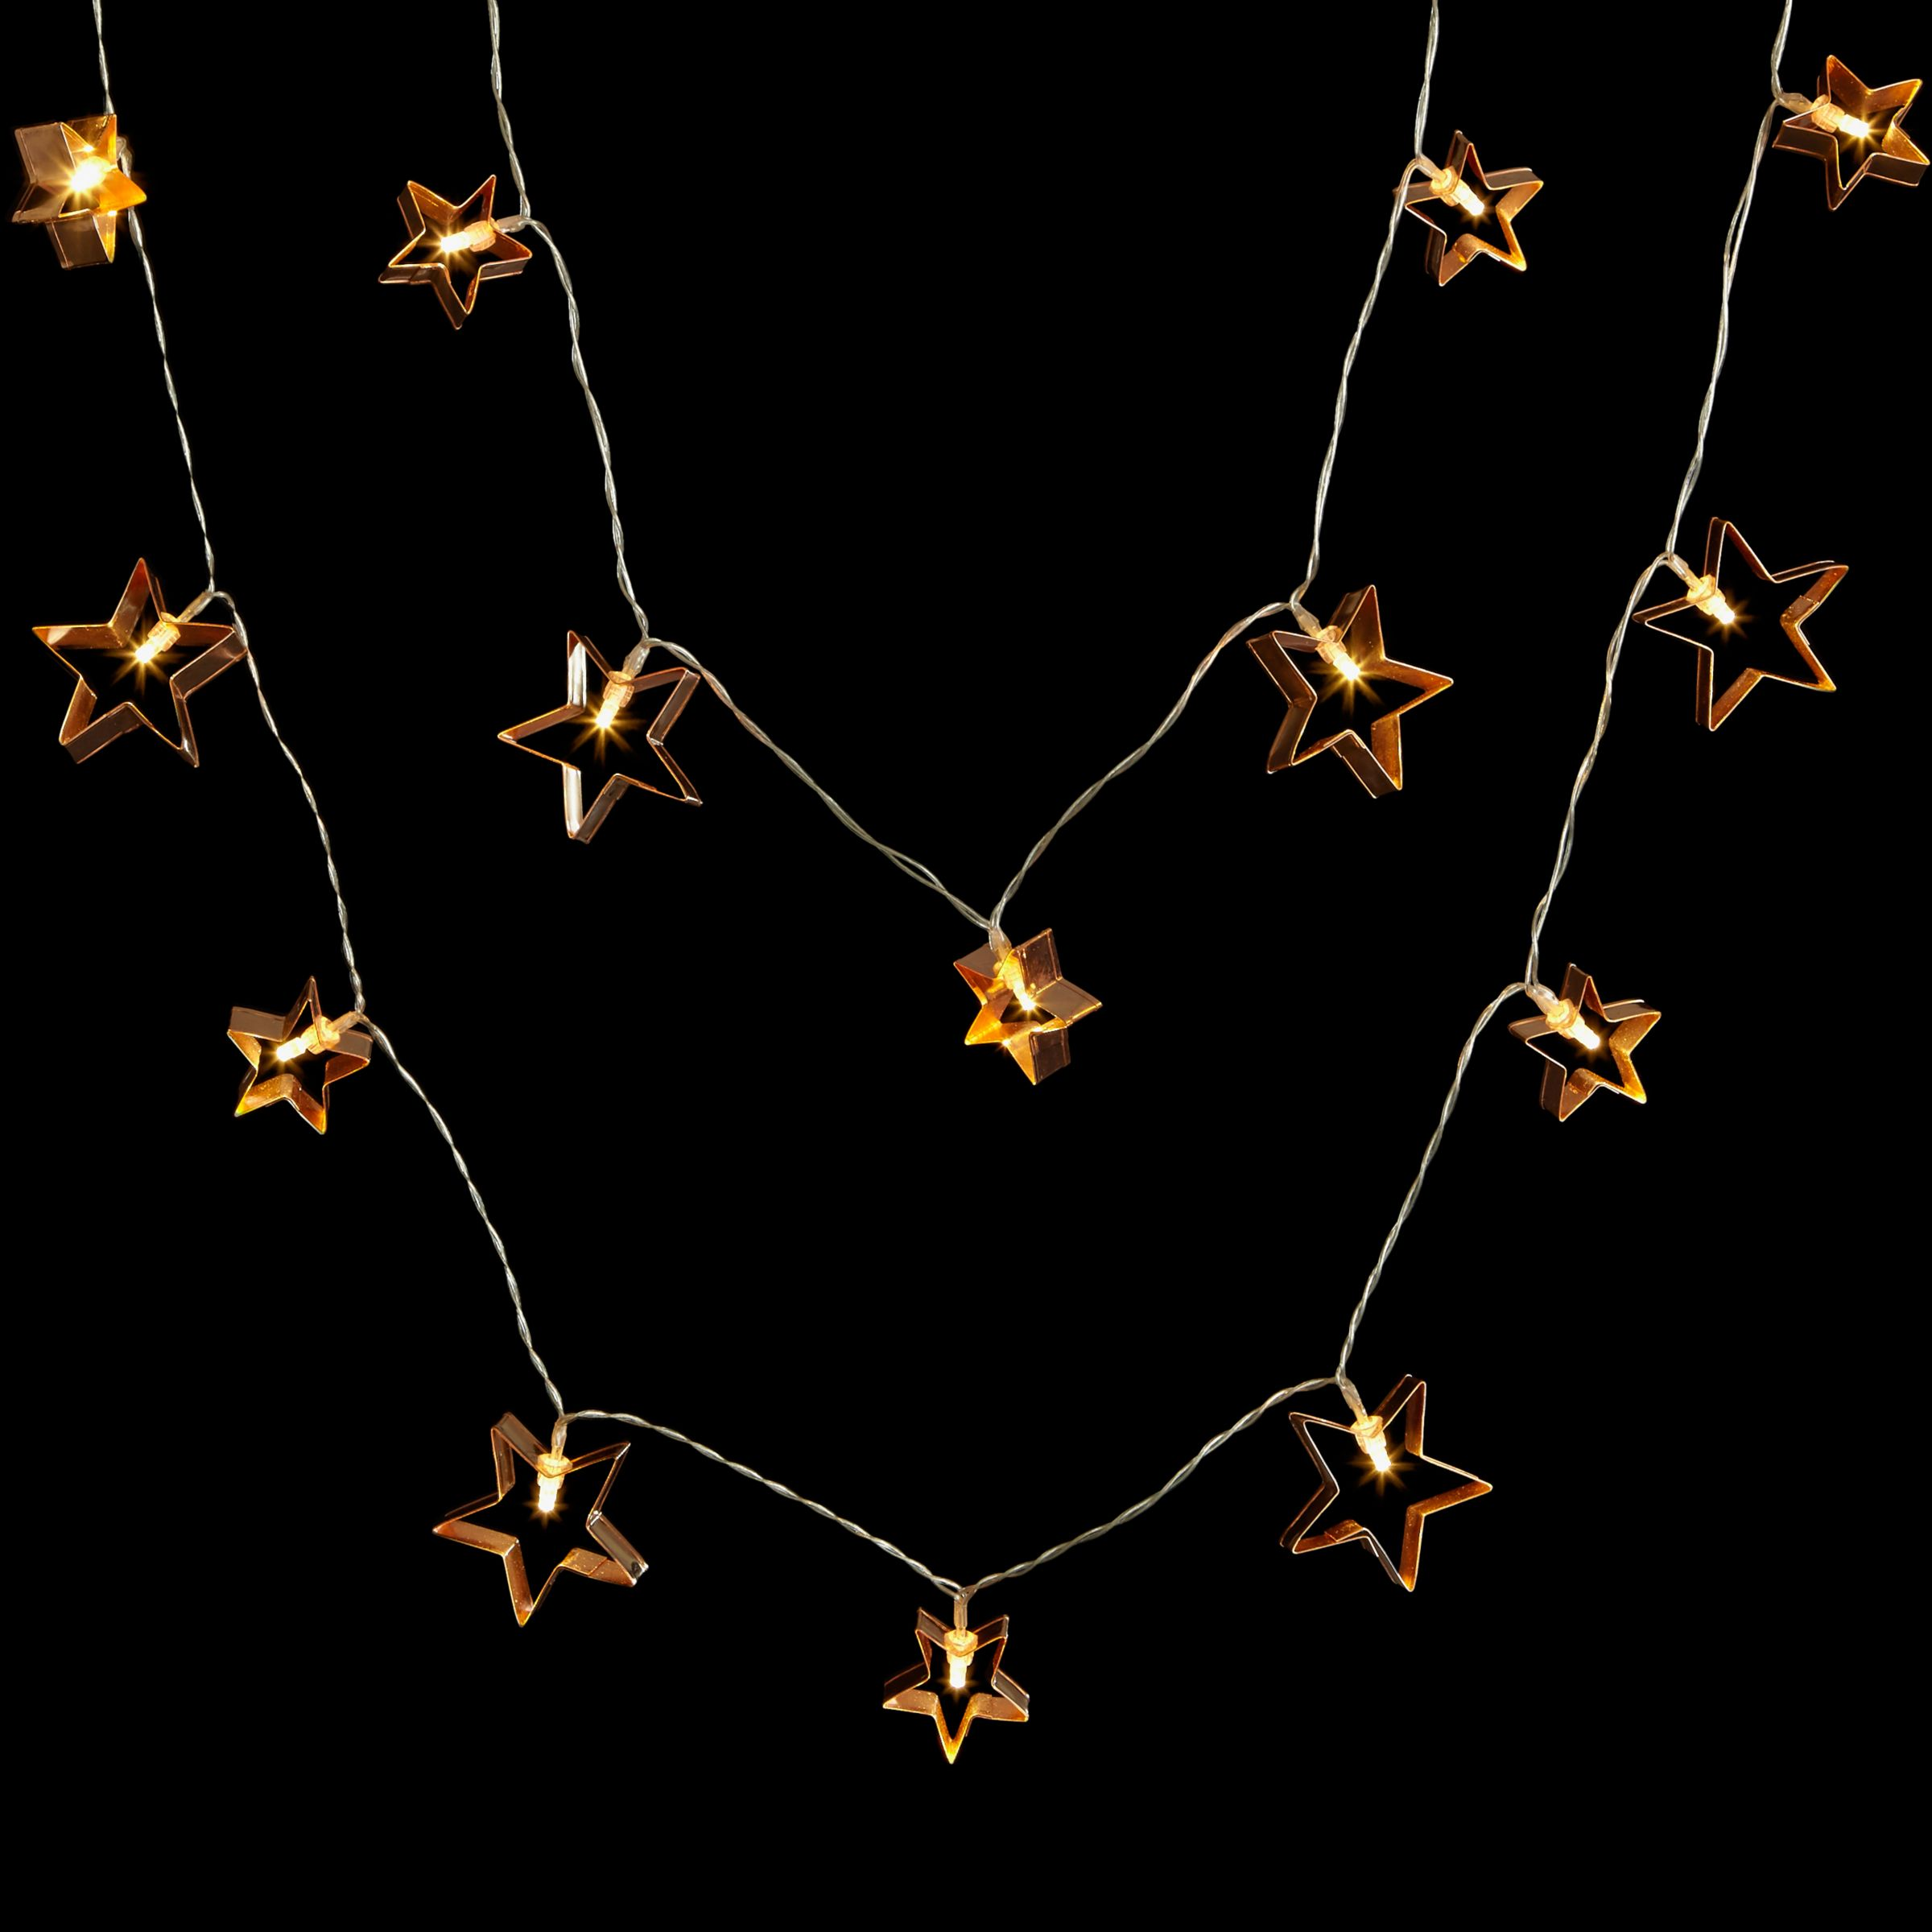 Outdoor String Lights John Lewis : Buy cheap Christmas star lights - compare products prices for best UK deals